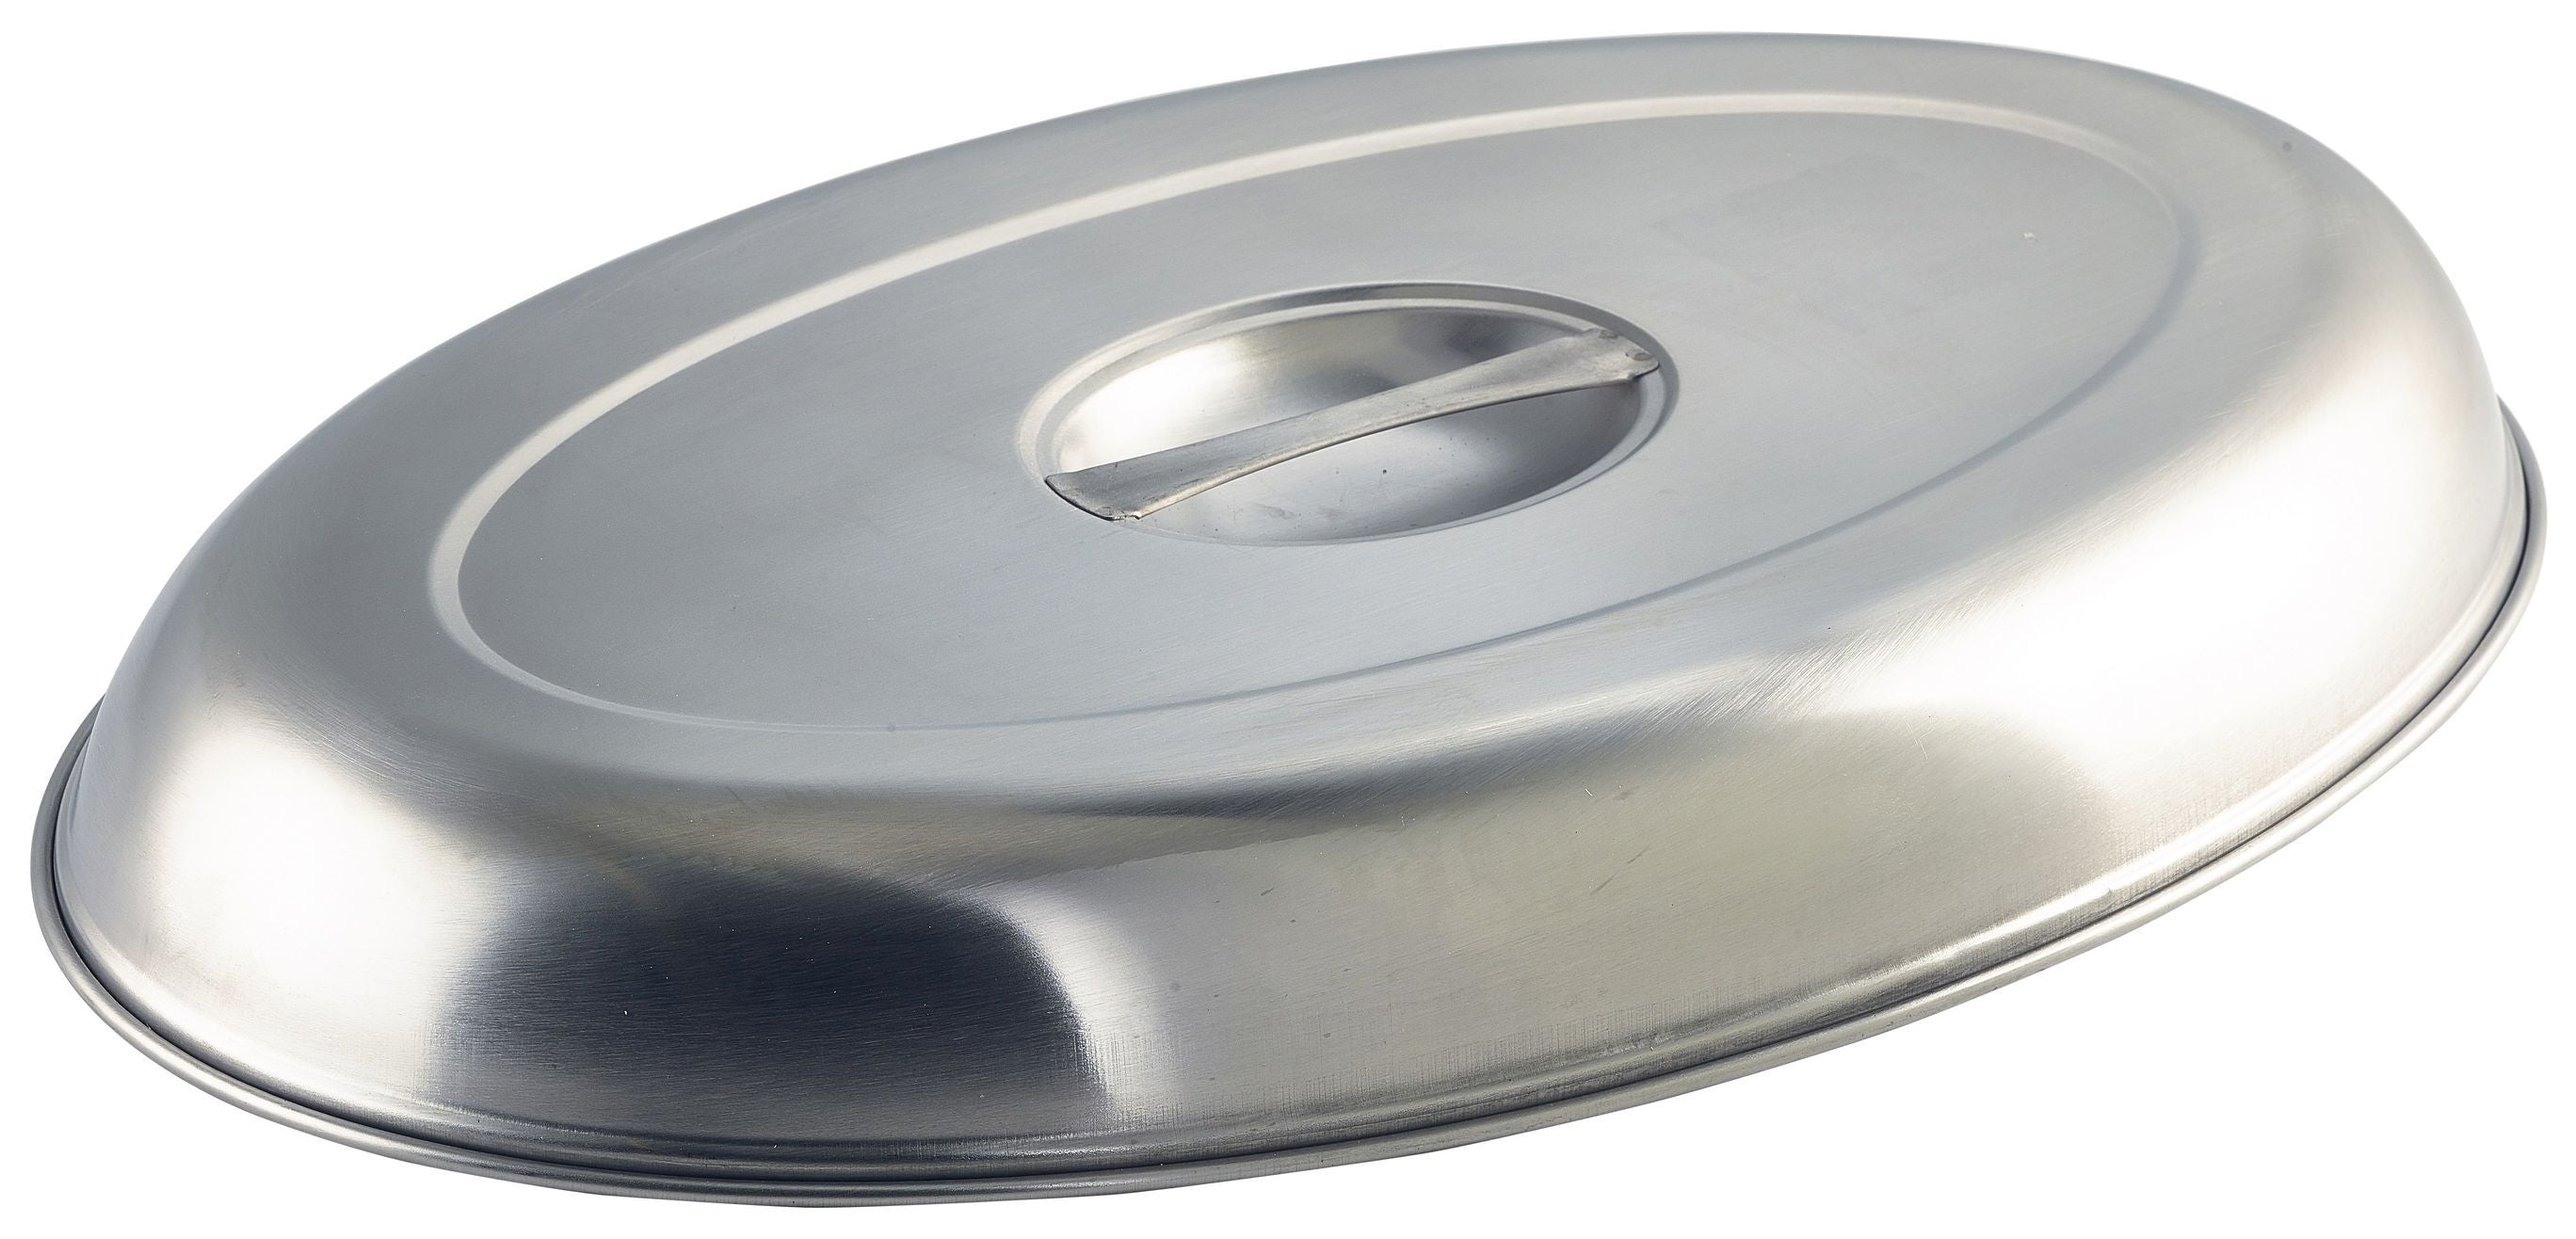 GenWare Stainless Steel Cover For Oval Vegetable Dish 30cm/12""